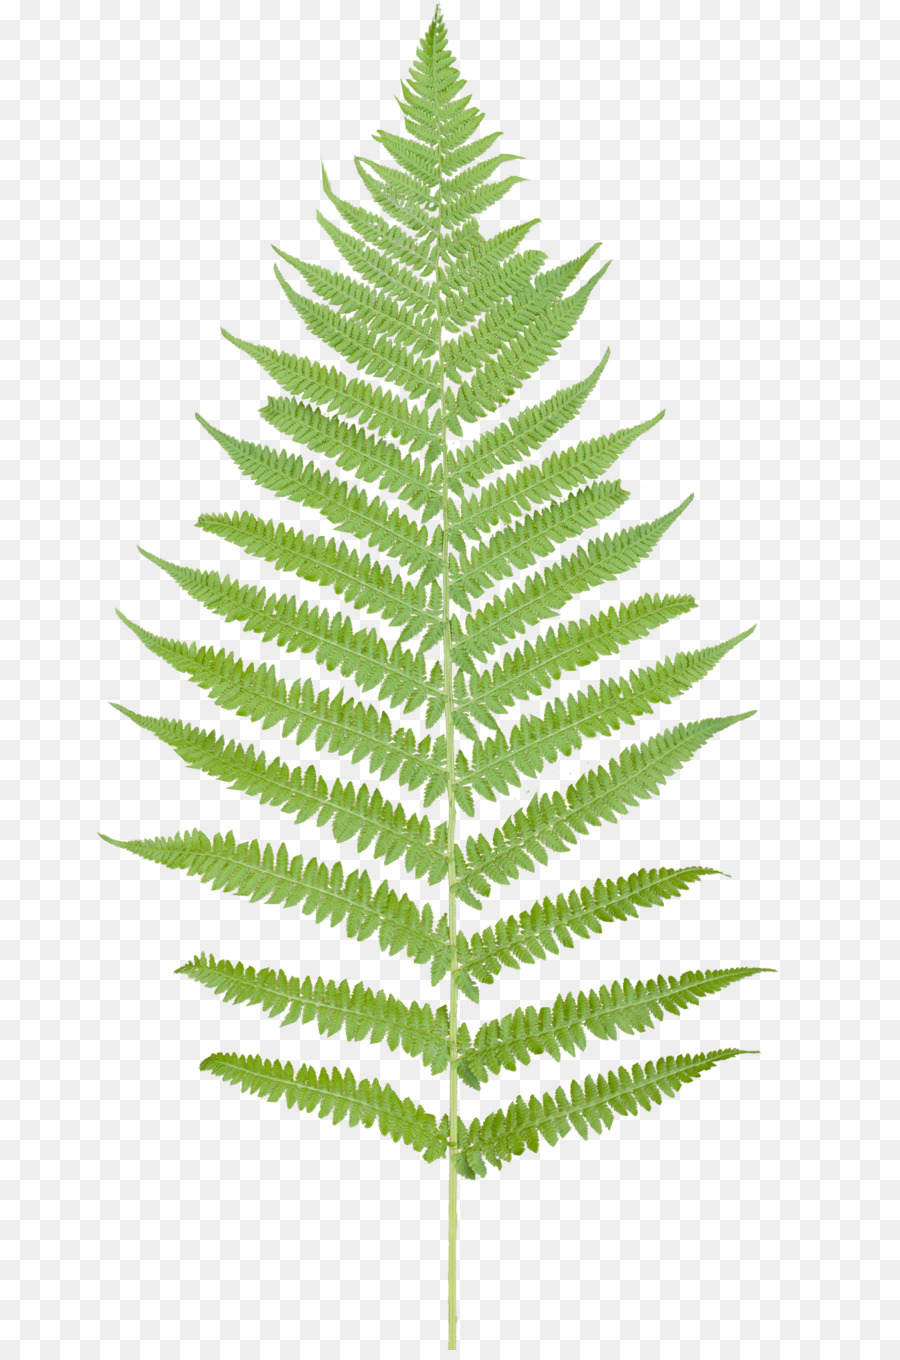 Free clipart fern leaf jpg royalty free library Family Tree Background clipart - Leaf, Plants, Plant, transparent ... jpg royalty free library